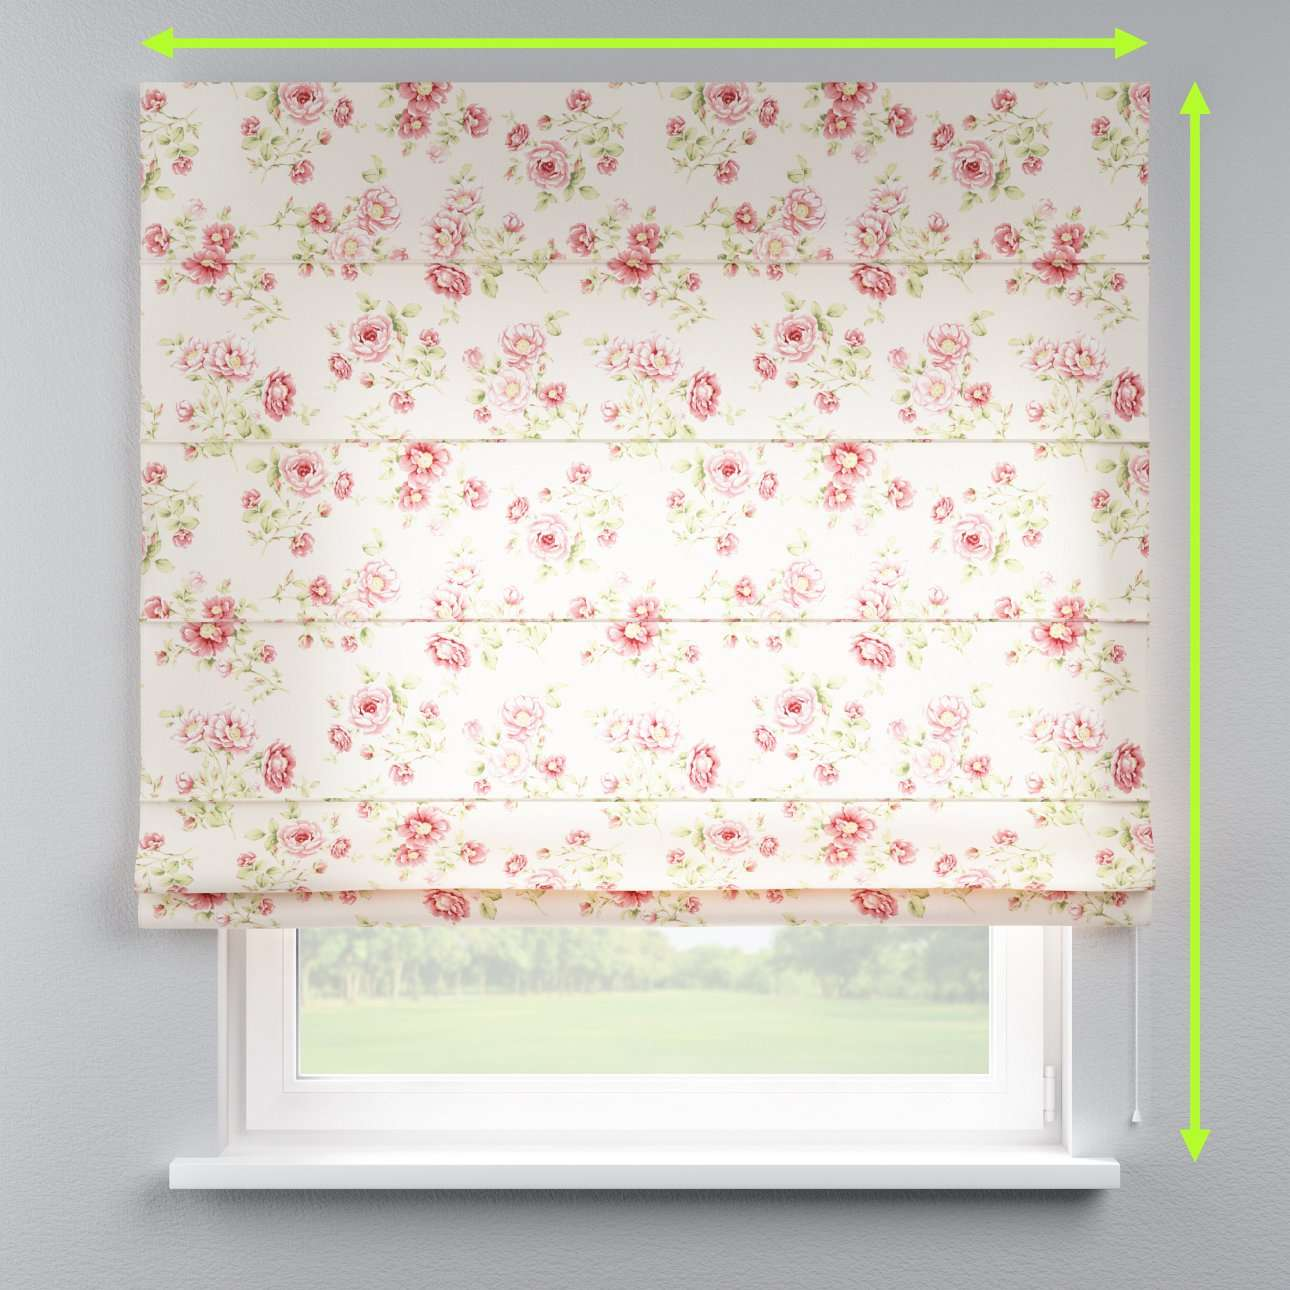 Capri roman blind in collection Ashley, fabric: 137-47